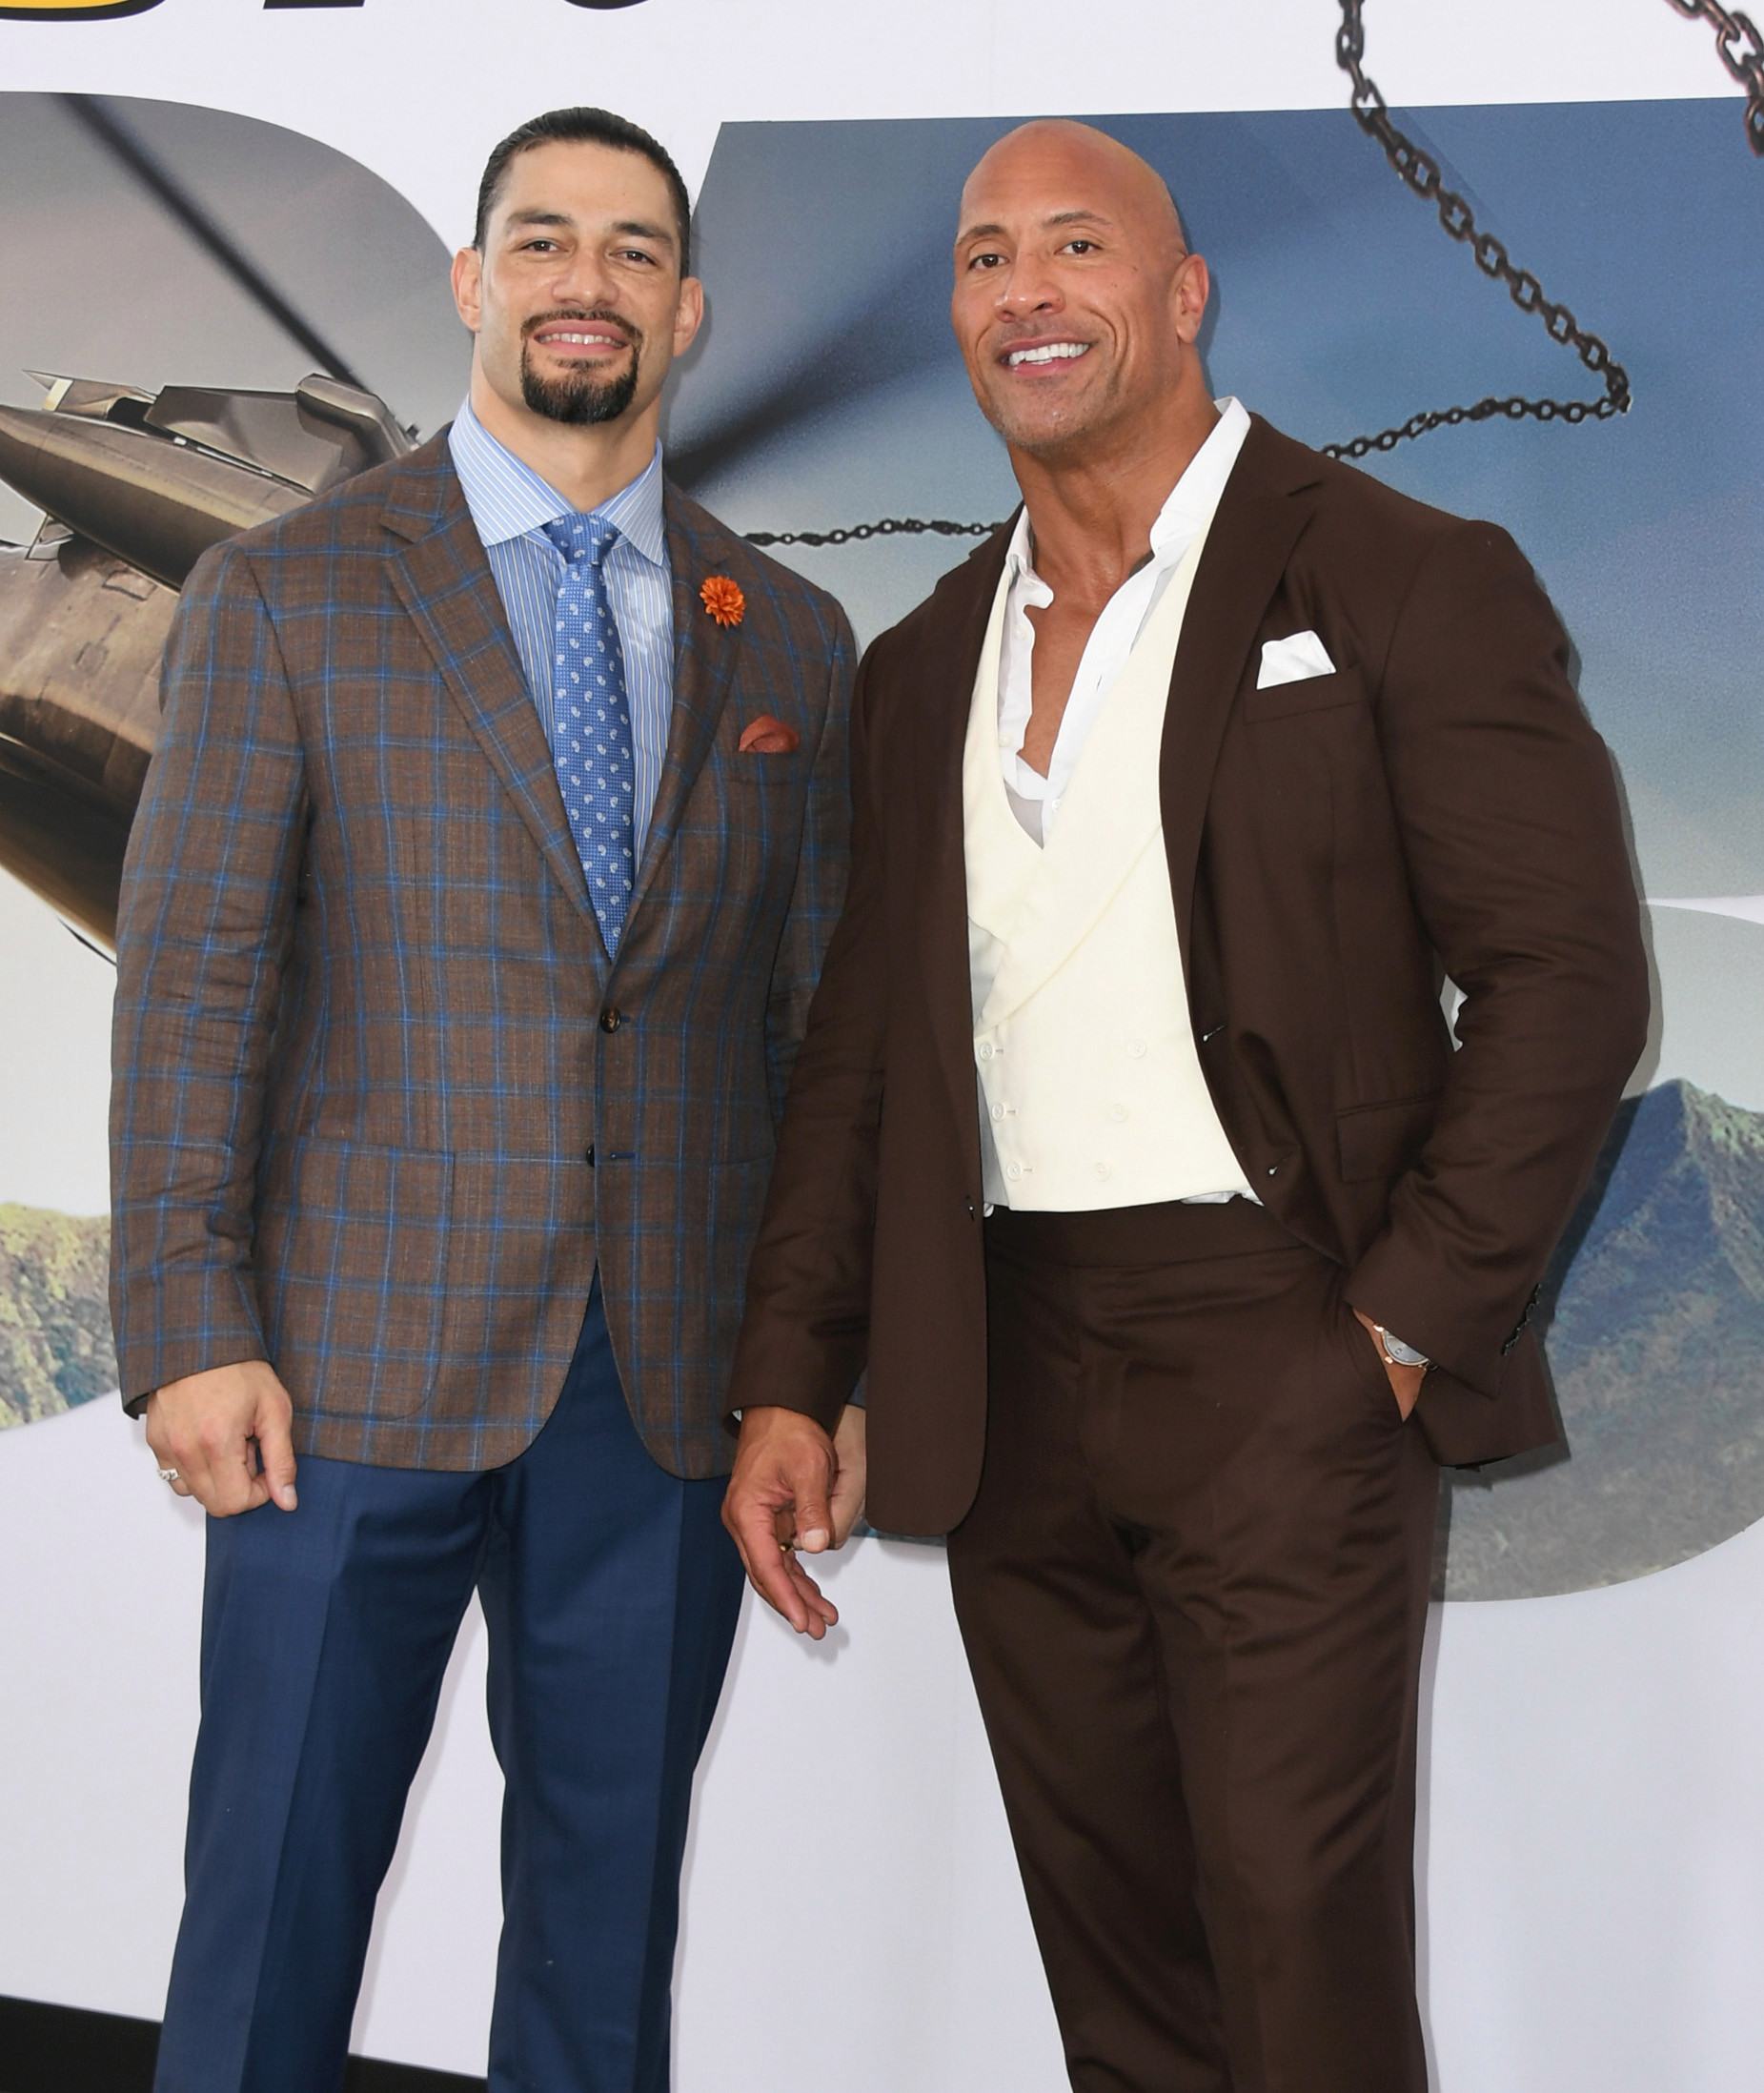 Roman Reigns (left) made his film debut in Fast & Furious Presents: Hobbs & Shaw